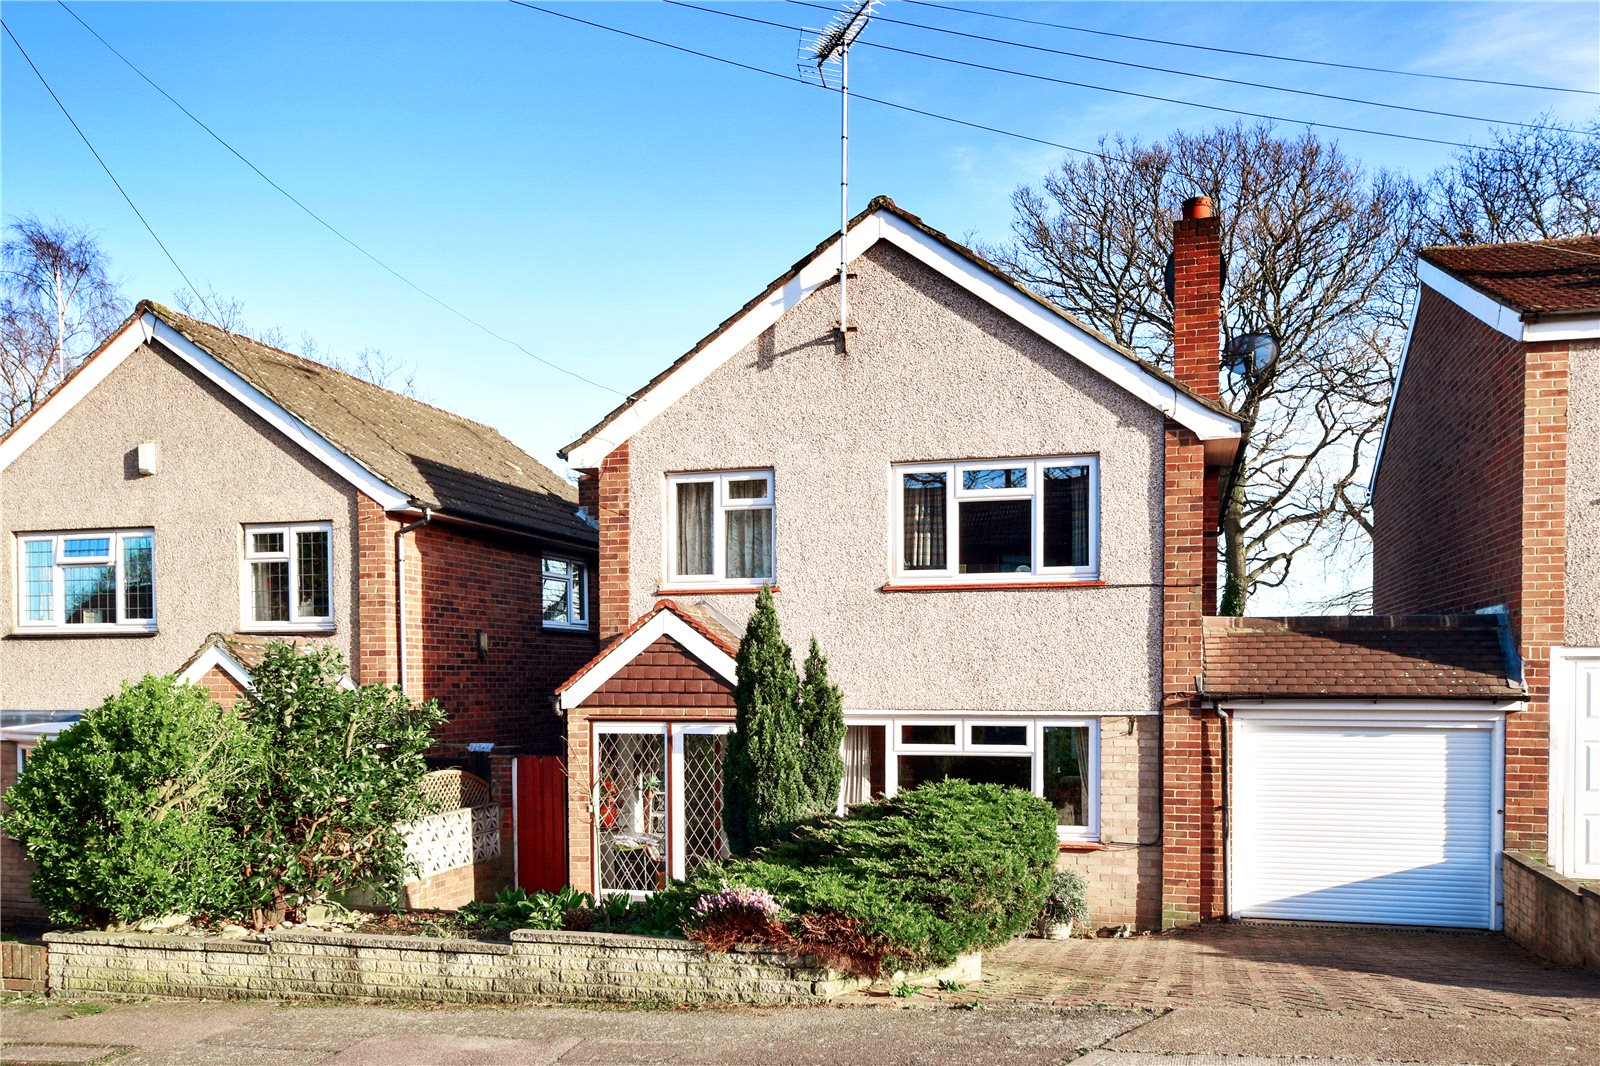 Chalet Close, Joydens Wood, Kent, DA5